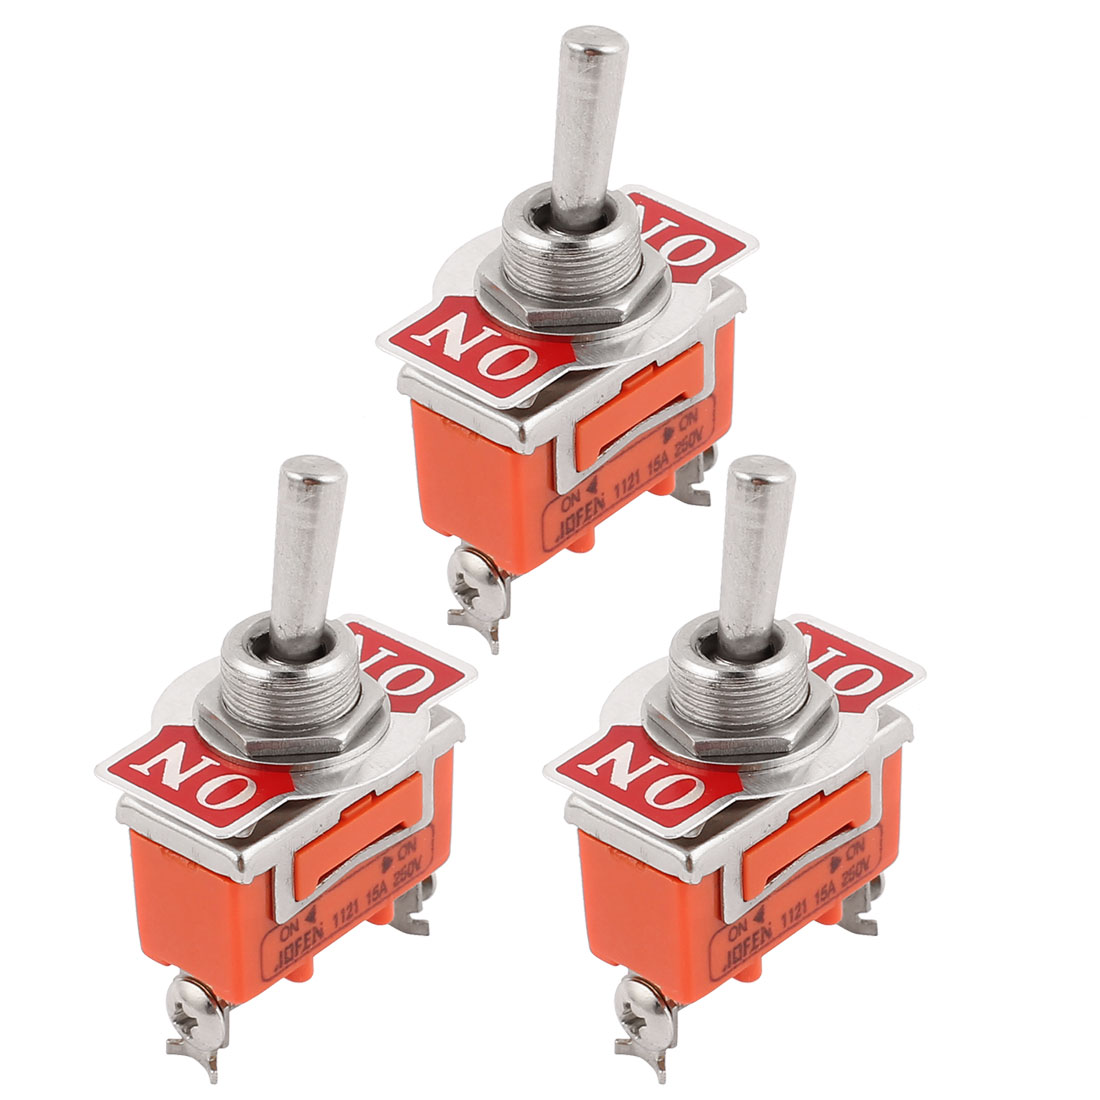 3 Pcs 250V 15A ON/ON 2 Position 3 Terminals SPDT NO Toggle Switch Latching